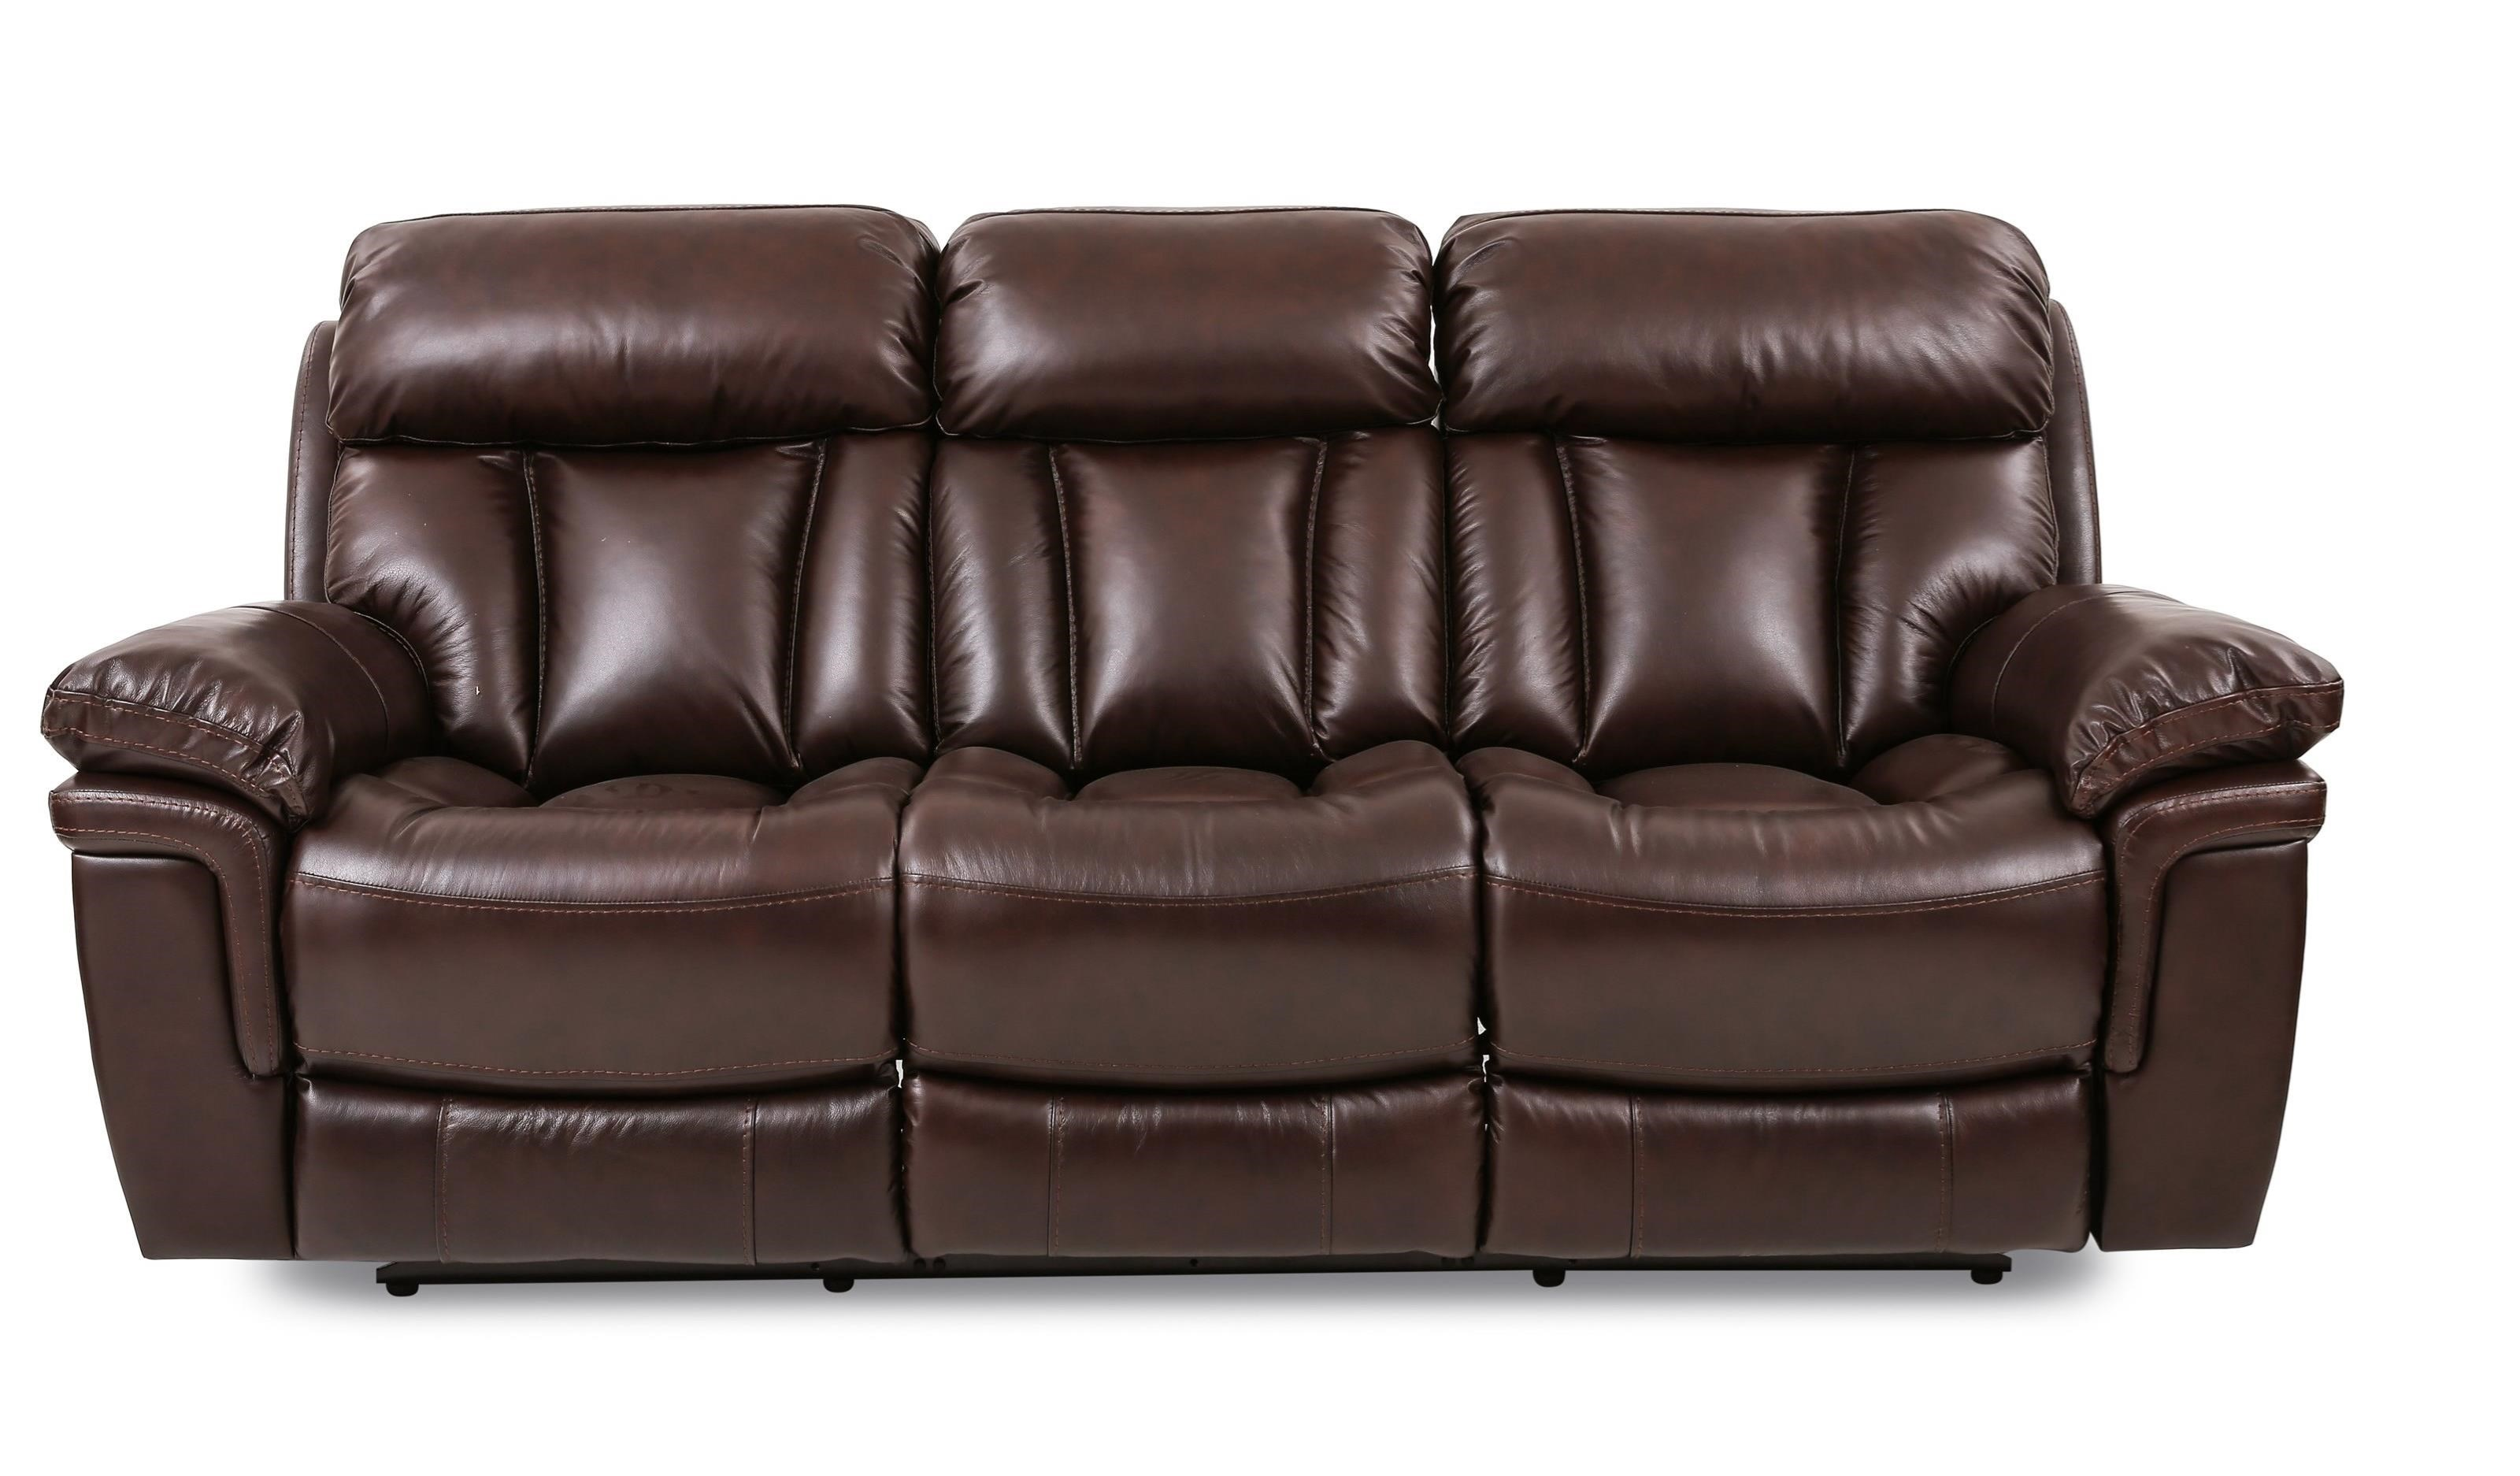 Bryant POWER HD/FT LEATHER Reclining Sofa at Walker's Furniture